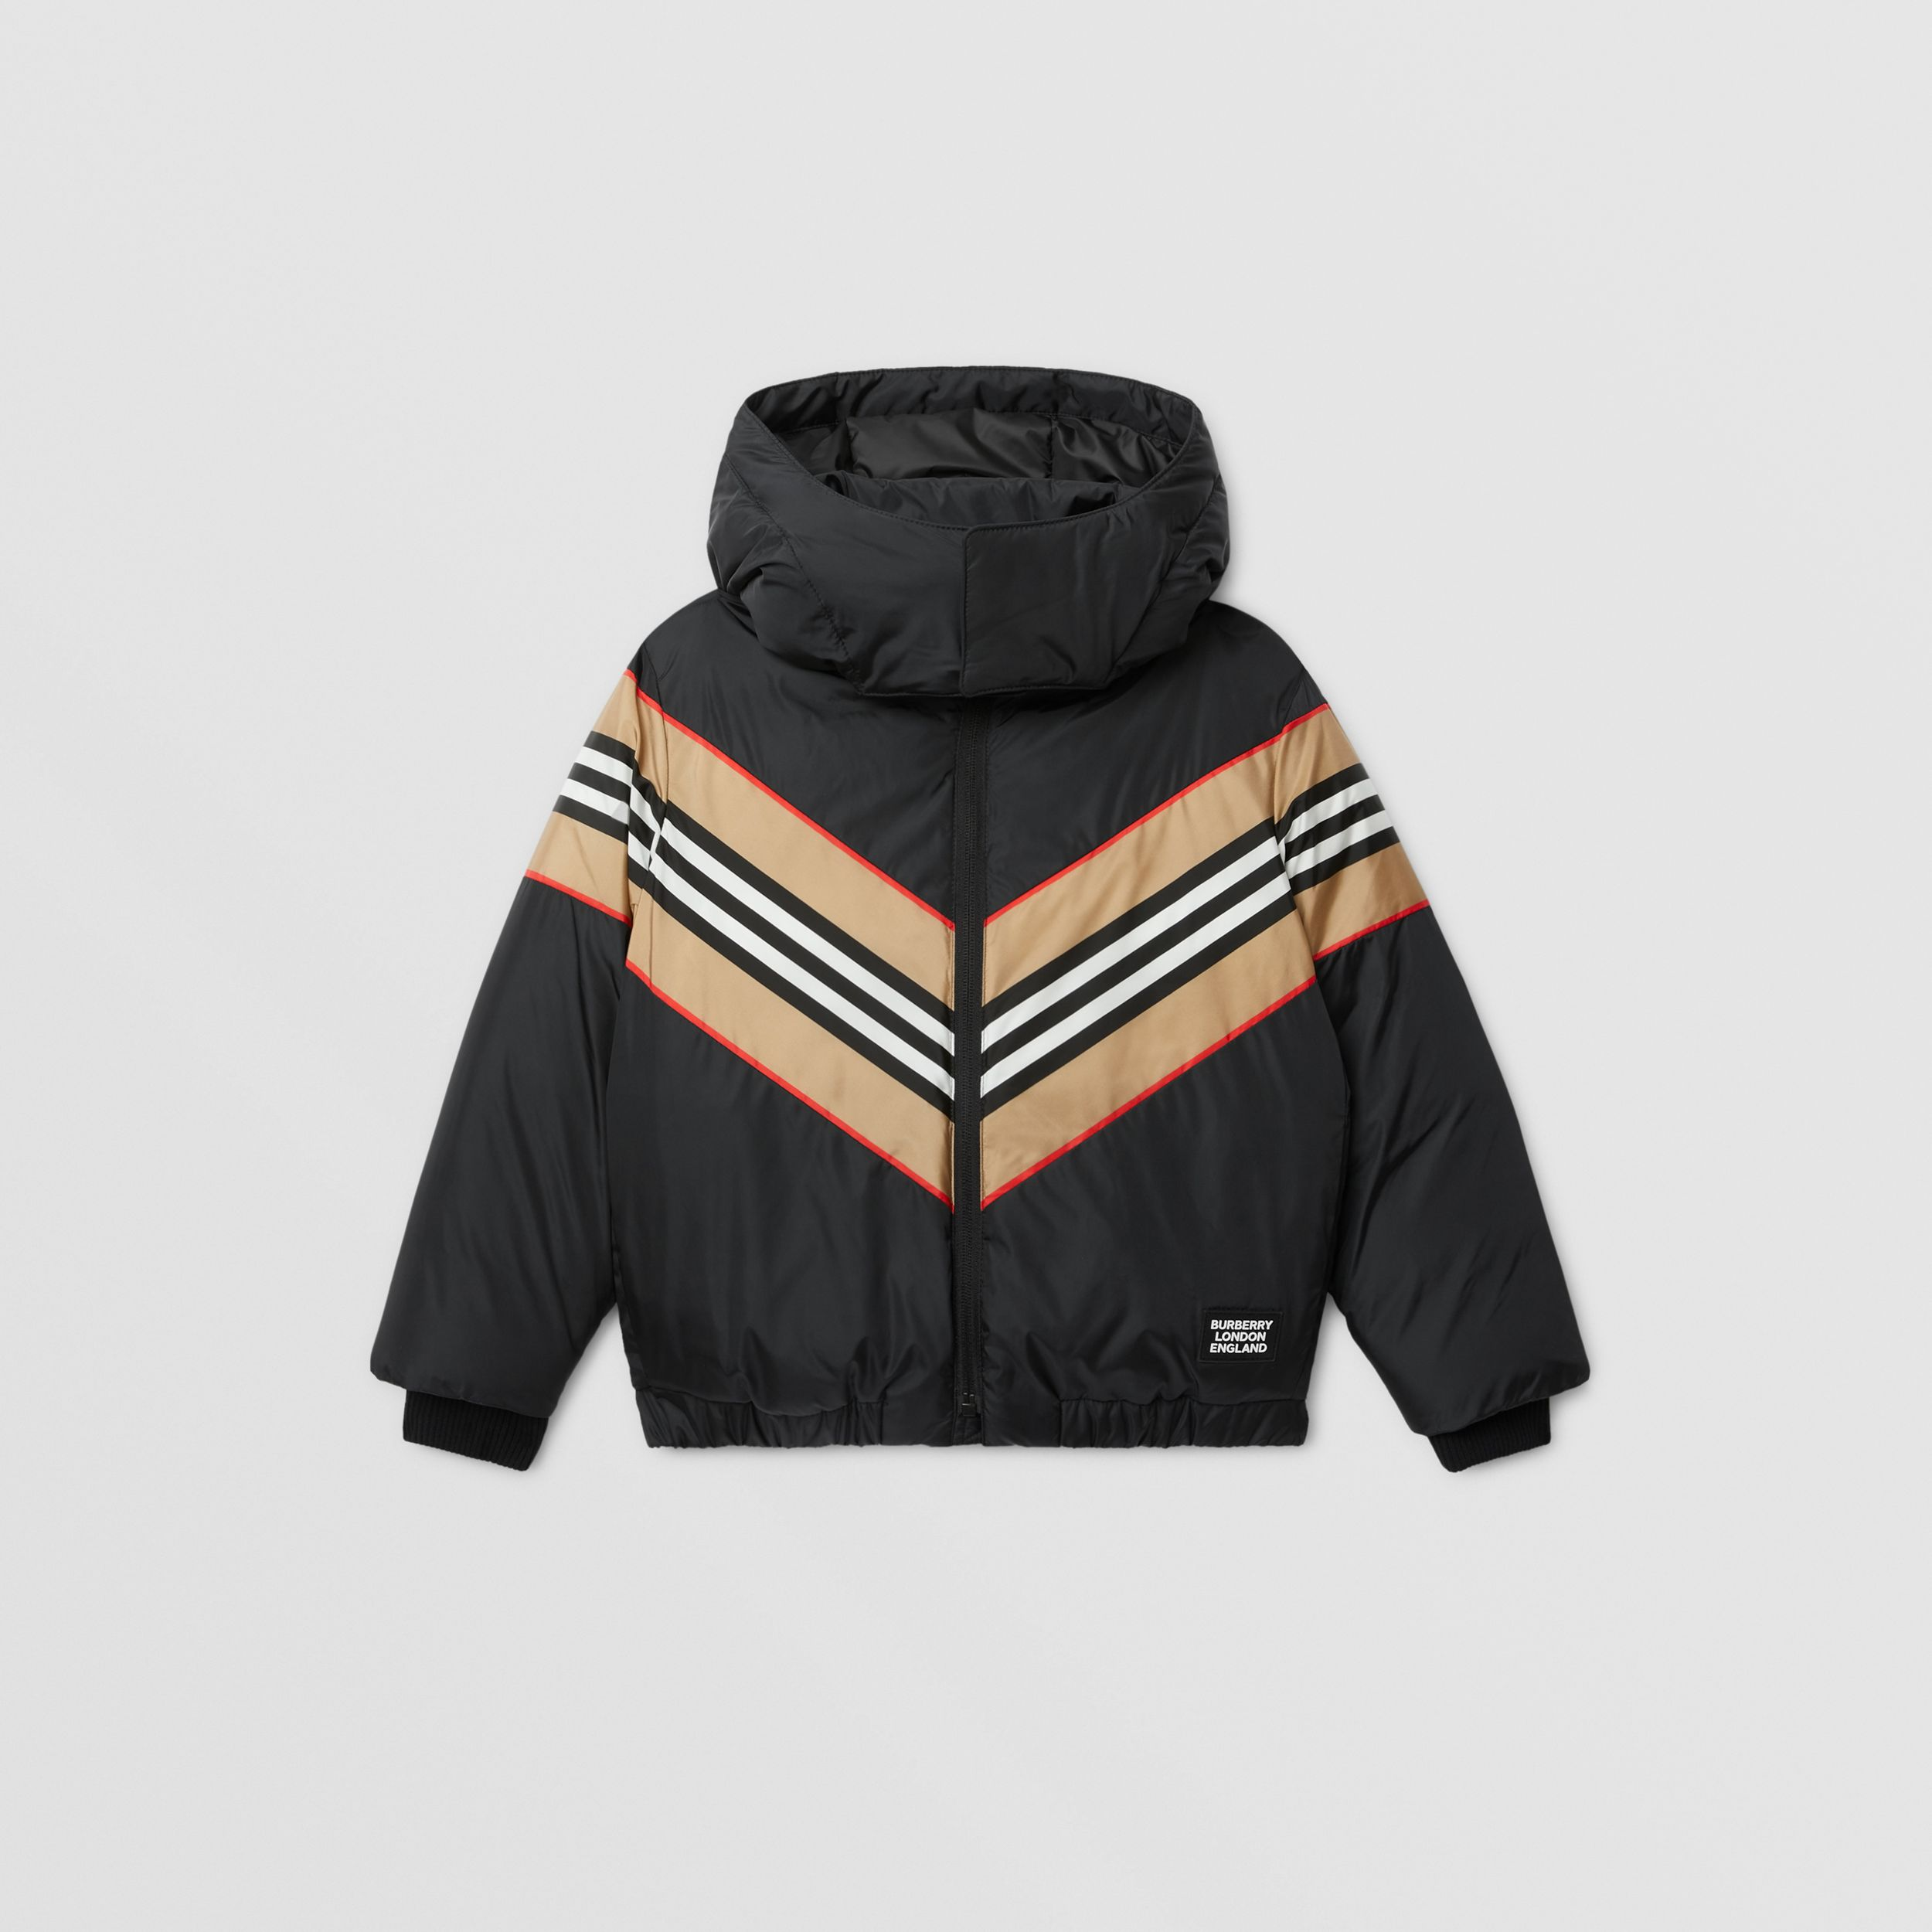 Logo Appliqué Icon Stripe Panel Down-filled Jacket in Black | Burberry - 1